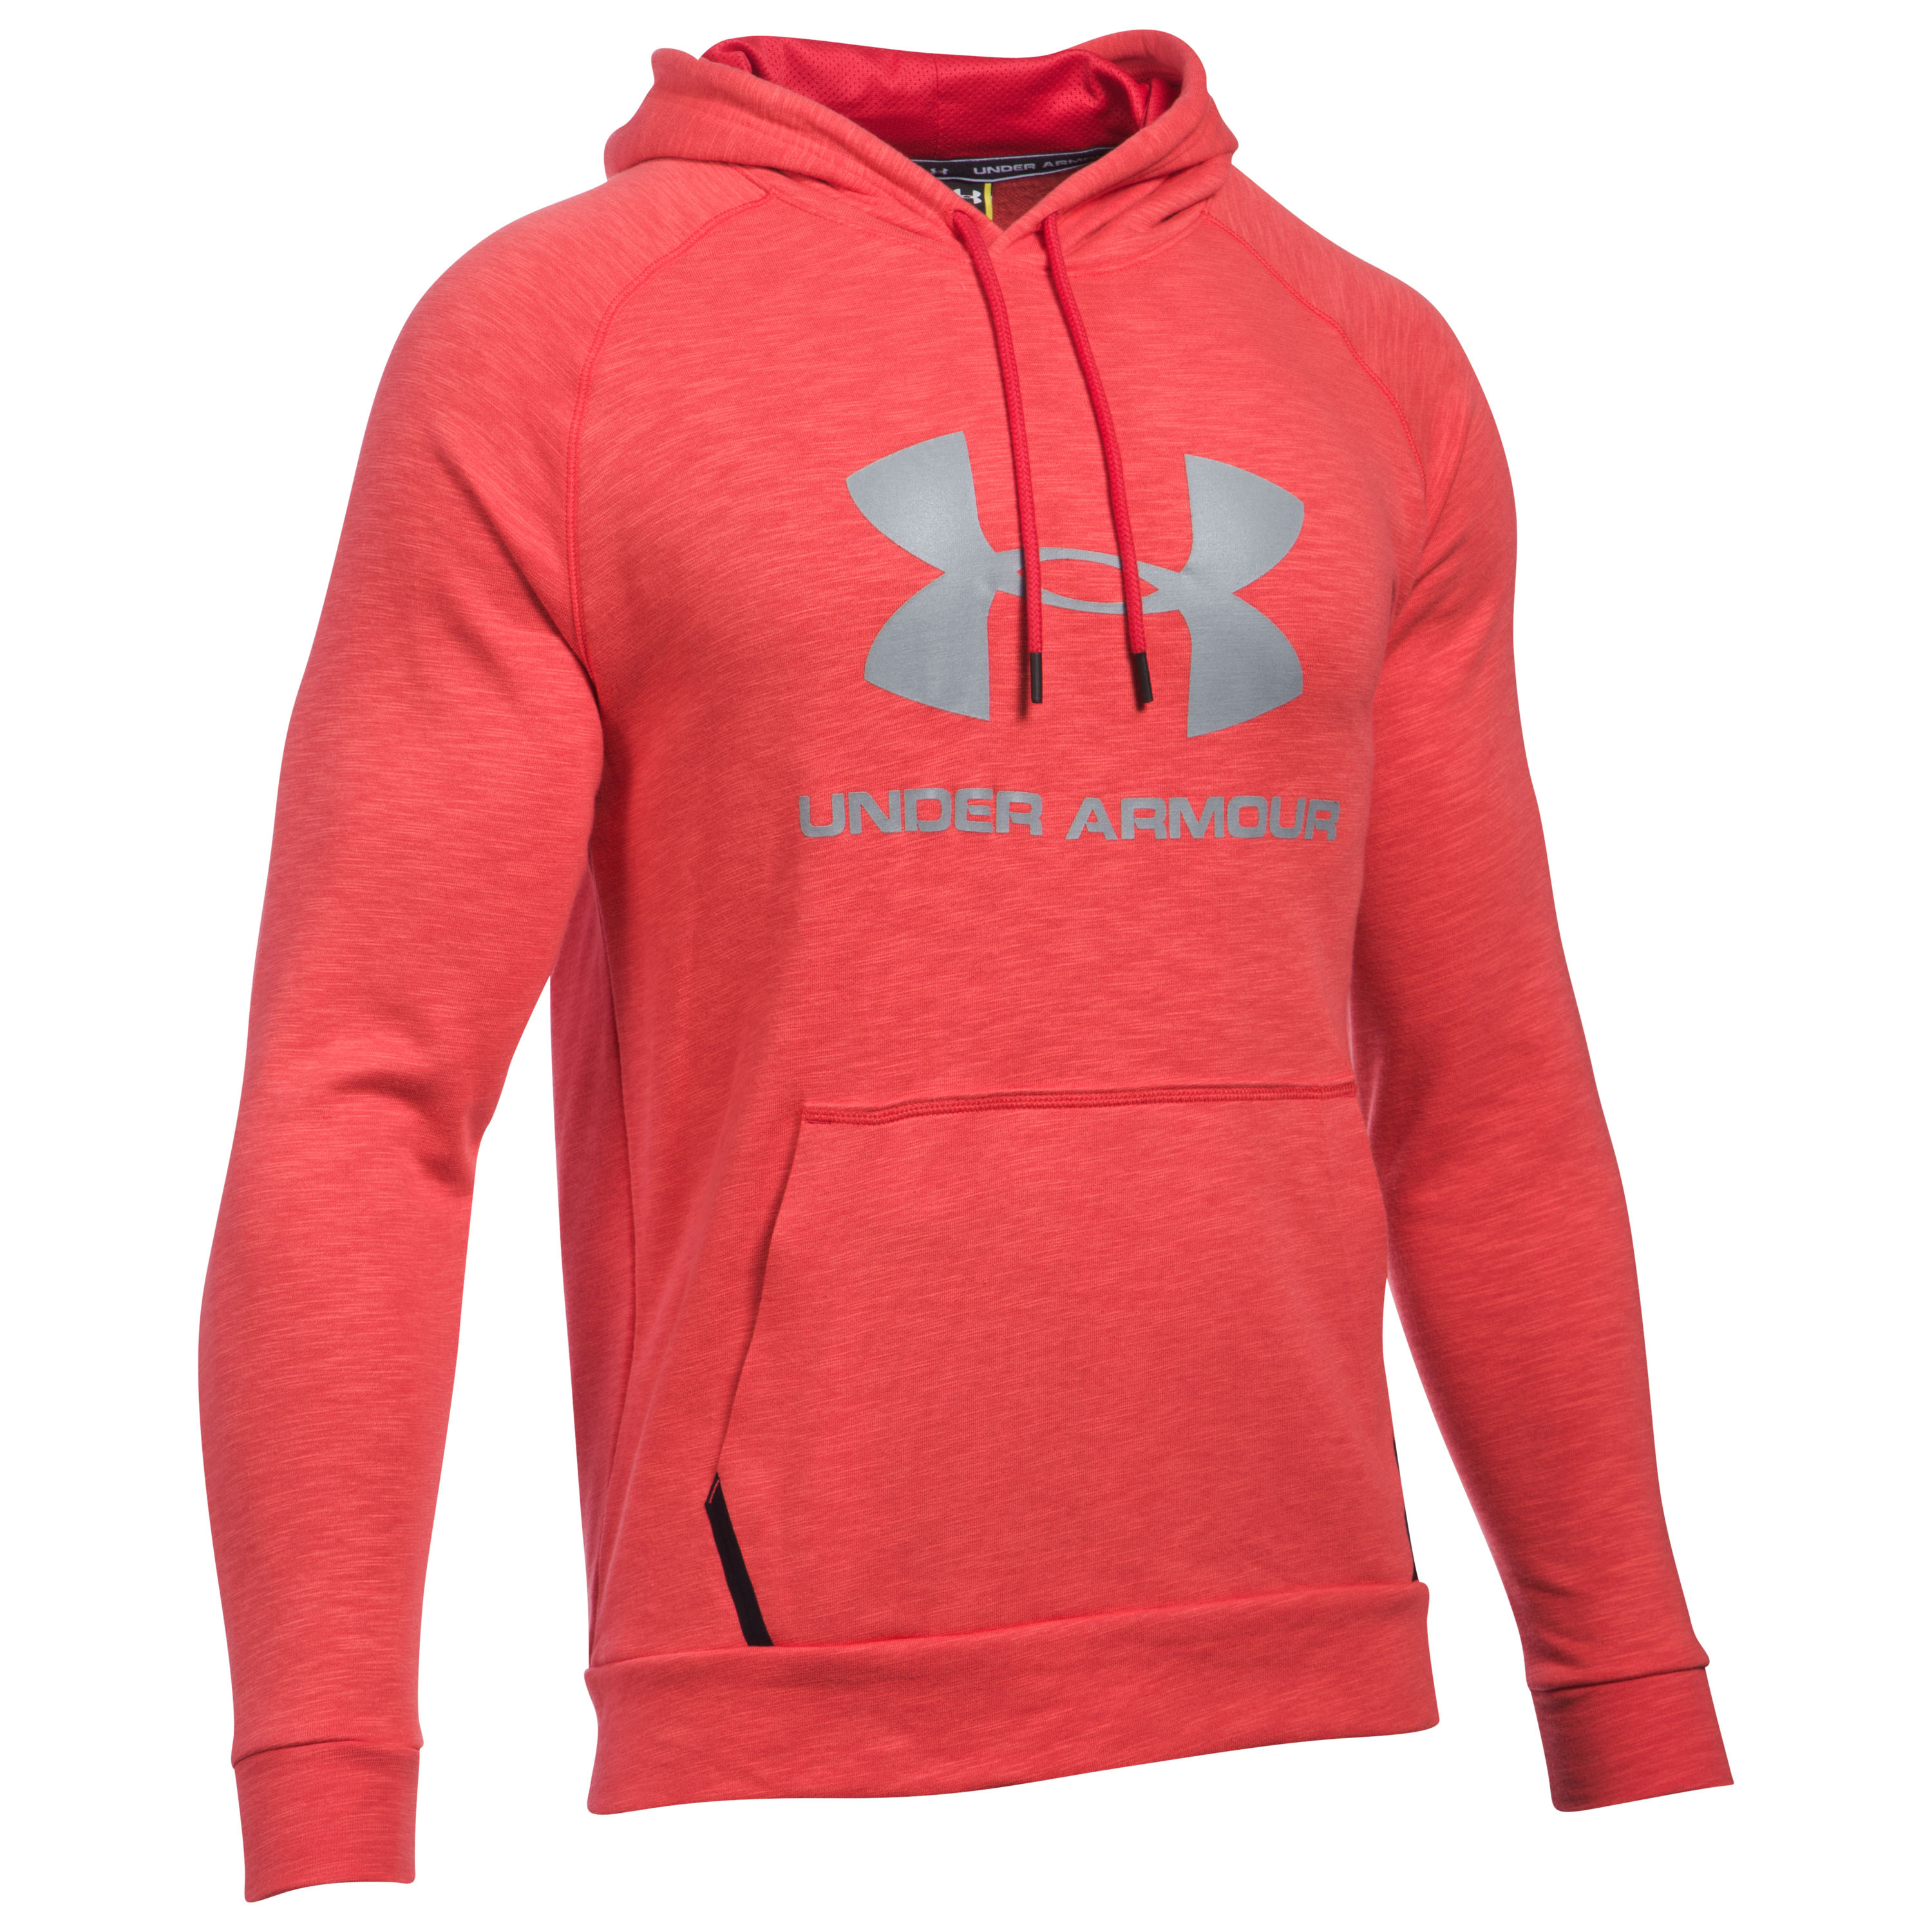 Under Armour Fitness Pullover Hoody Sport Style Triblend red